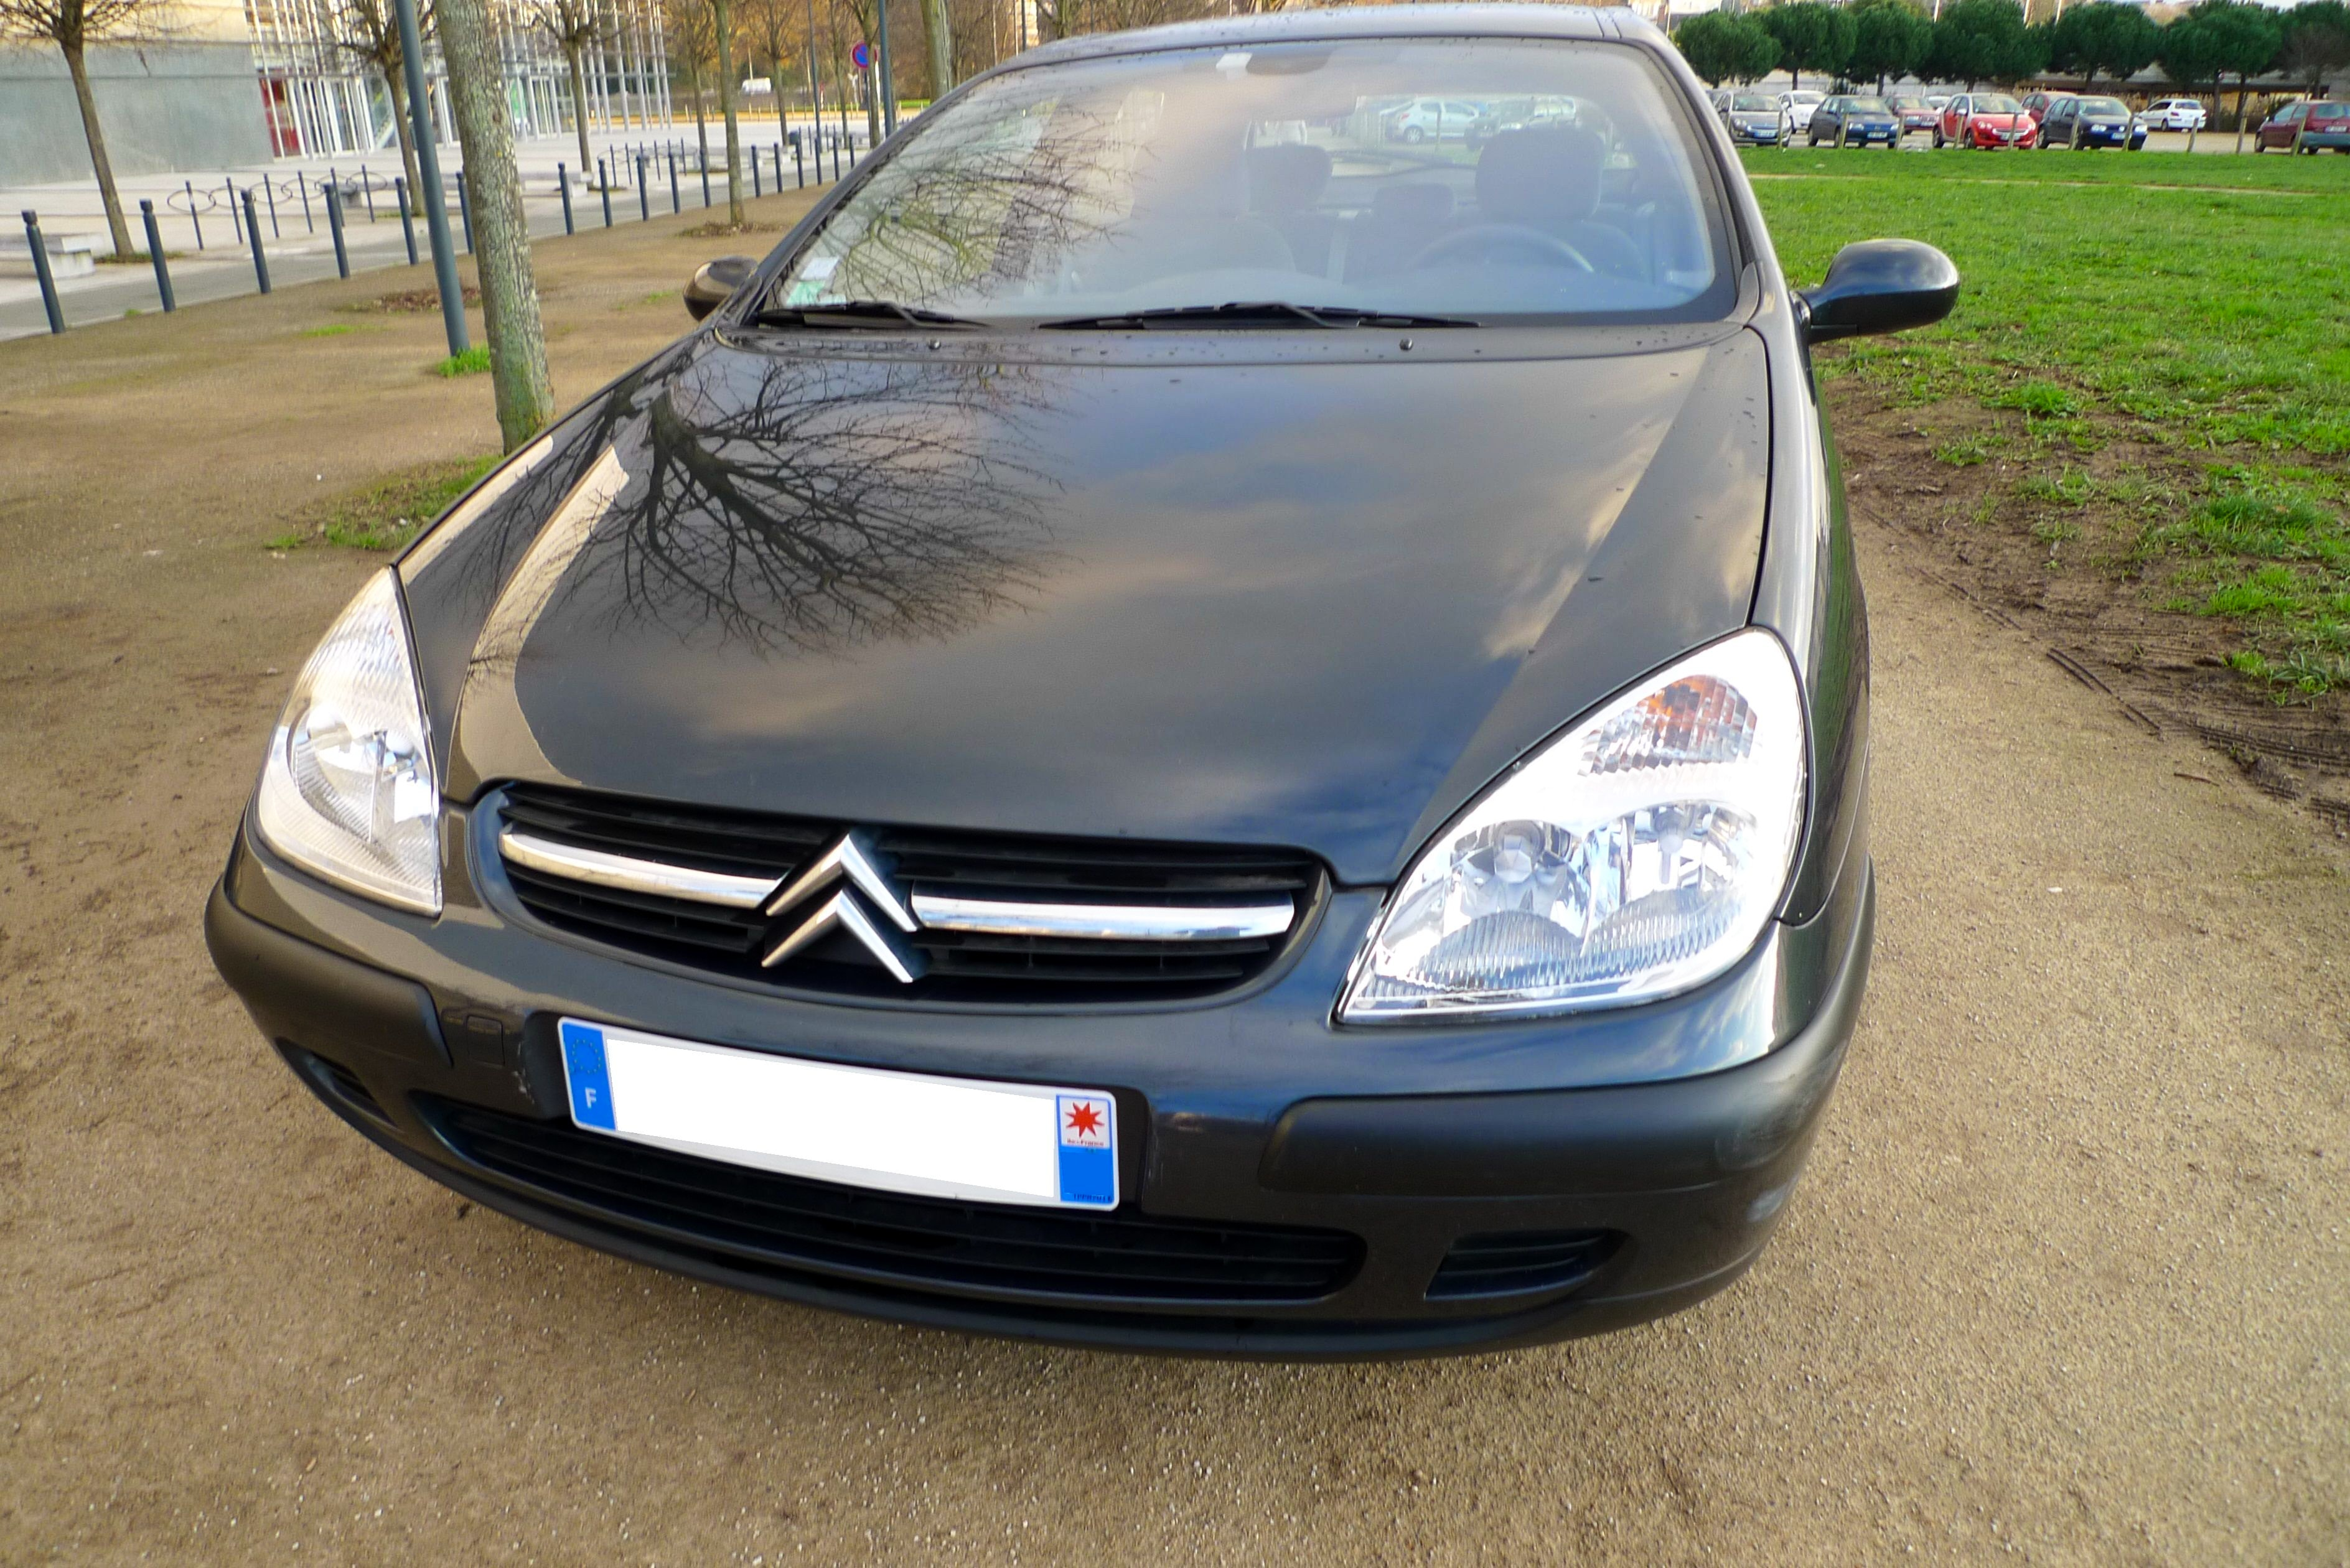 CITROEN C5 HDI 110cv Pack, 2003, Diesel - Berline Angers (49)